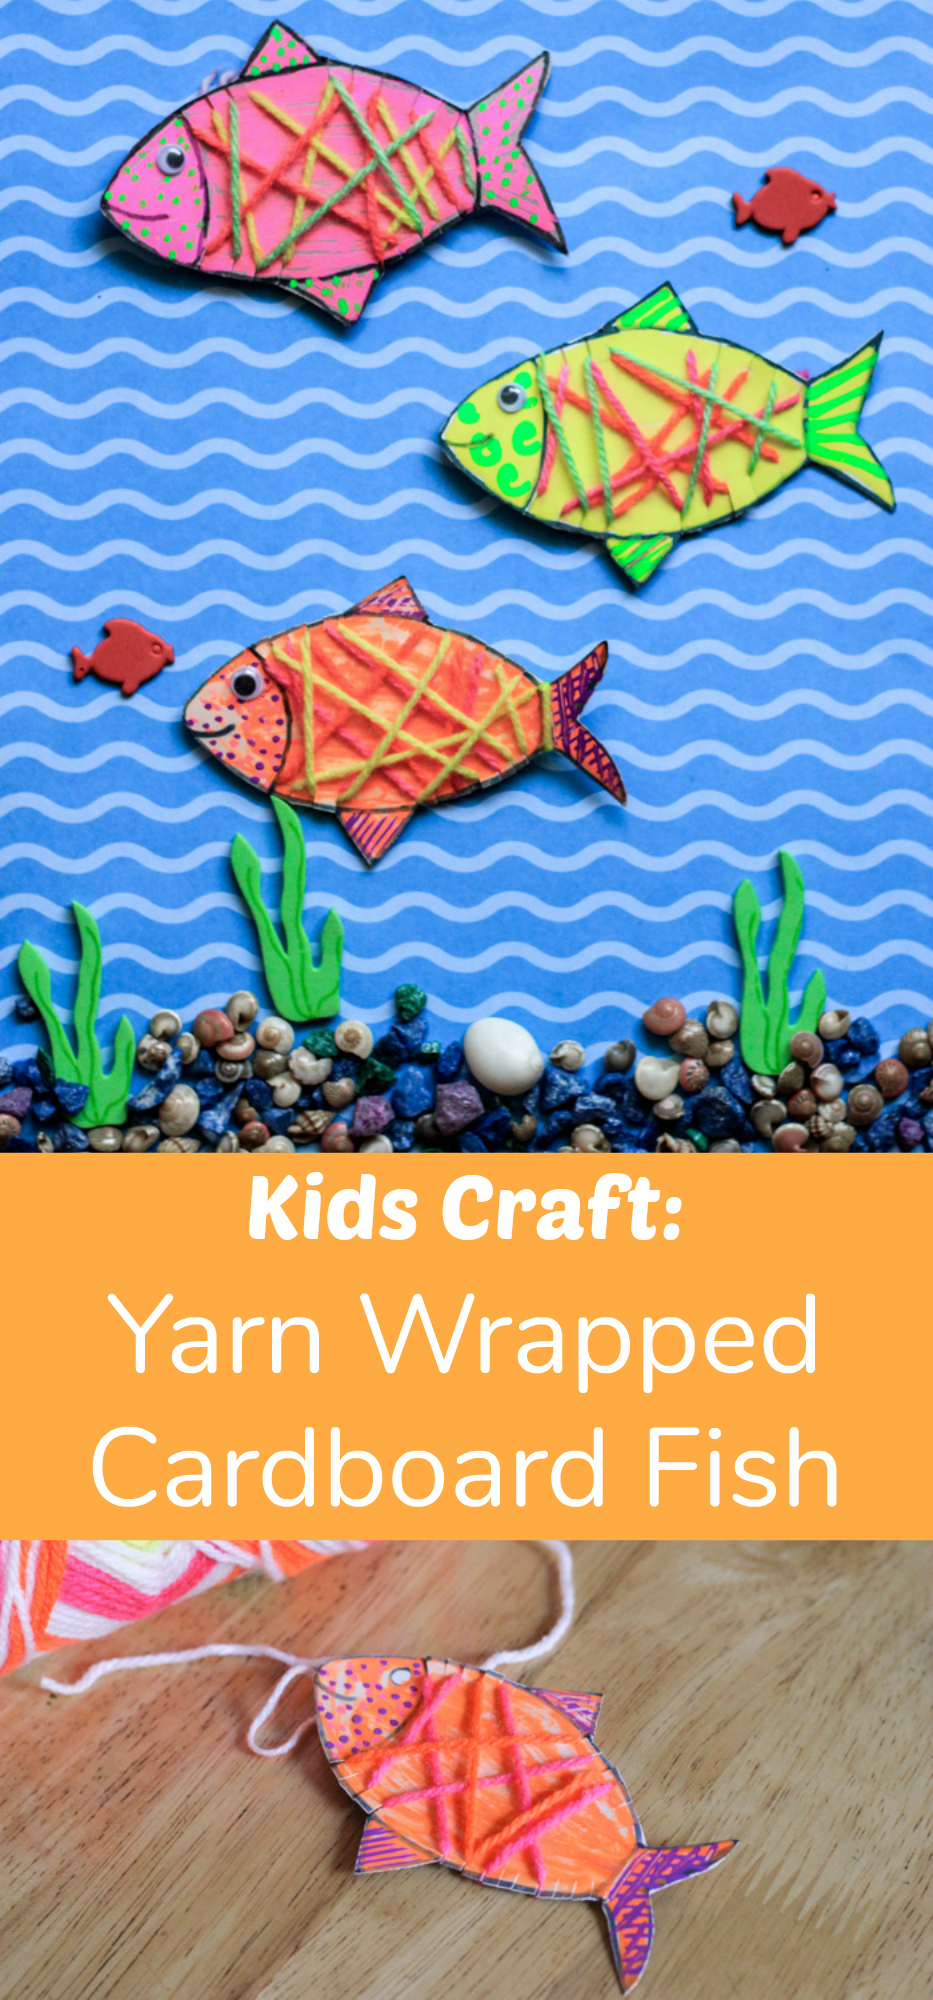 Yarn Wrapped Cardboard Fish Kids Craft